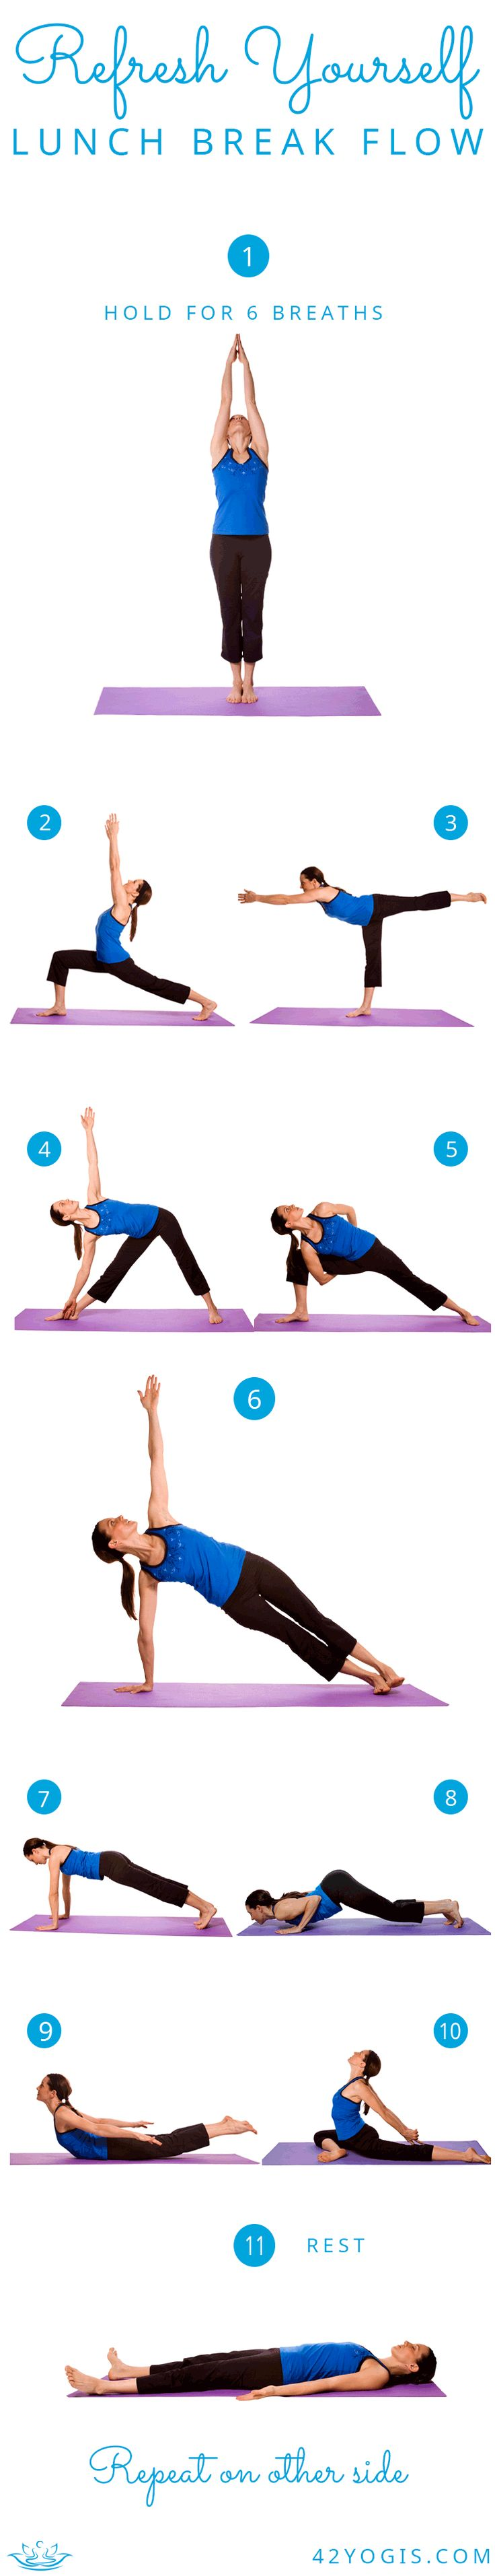 This is a great little yoga flow for your lunch break that will rejuvenate you and leave you feeling ready to conquer the rest of the day.   42Yogis.com: Launching 4/2/2014